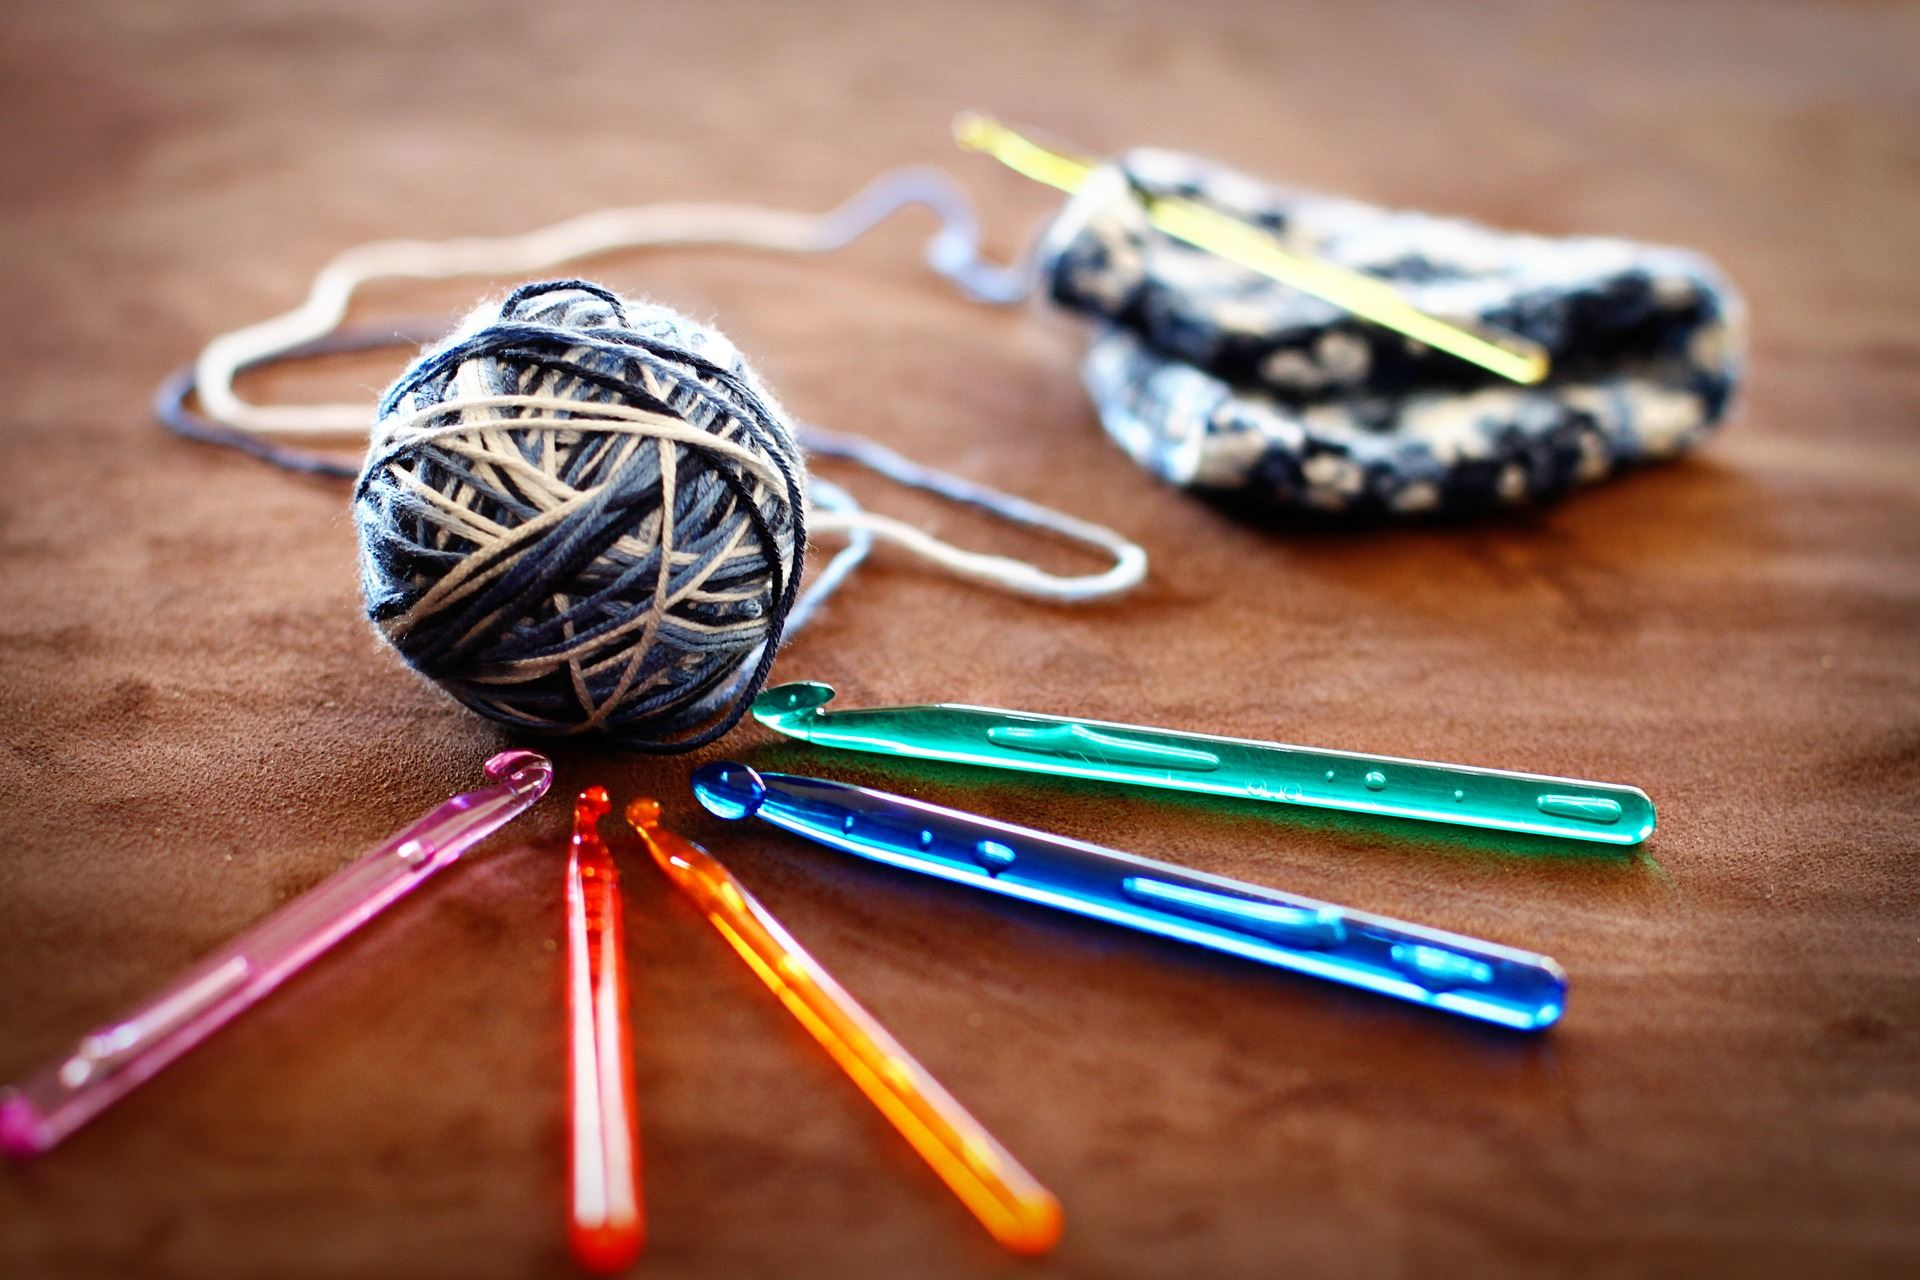 Yarn ball and crochet needles